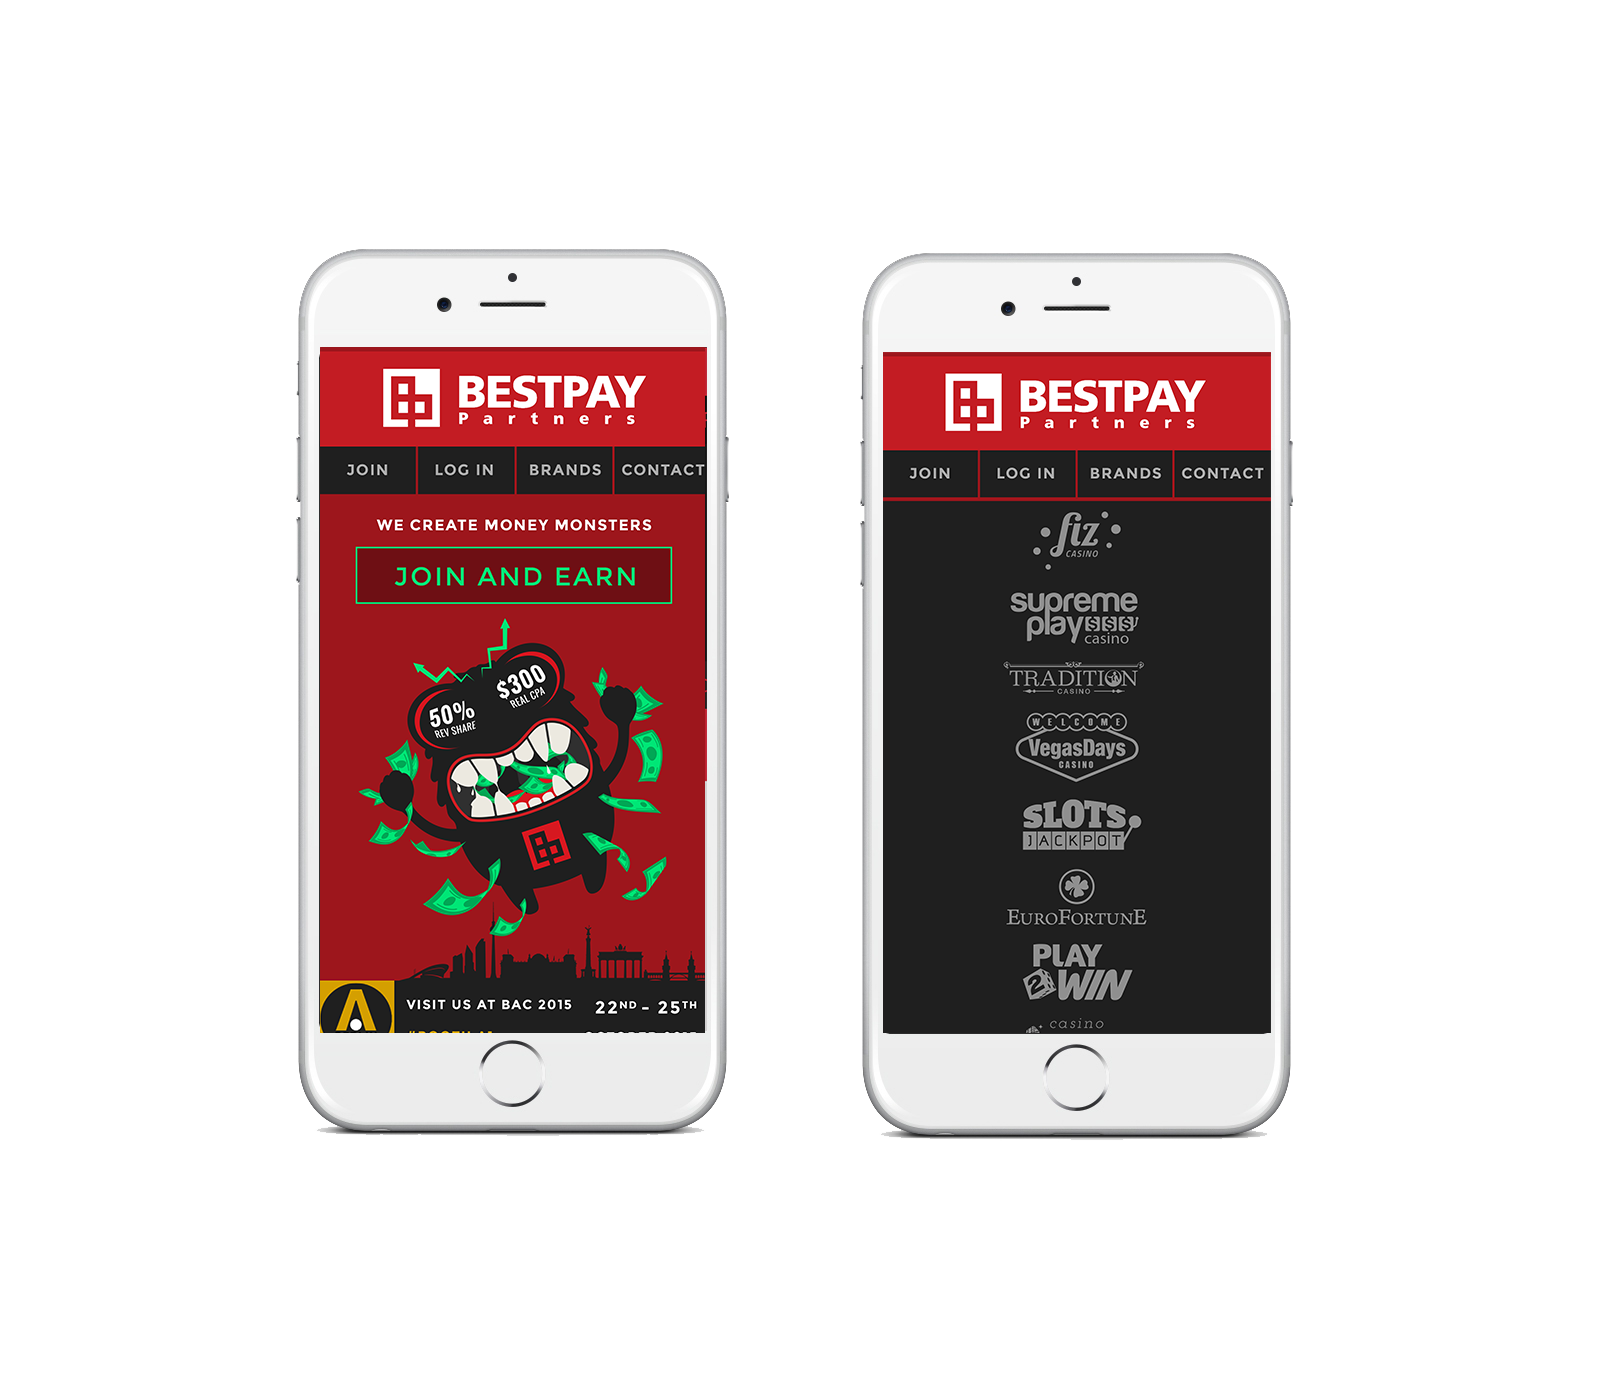 bestpay_mobile-(2)